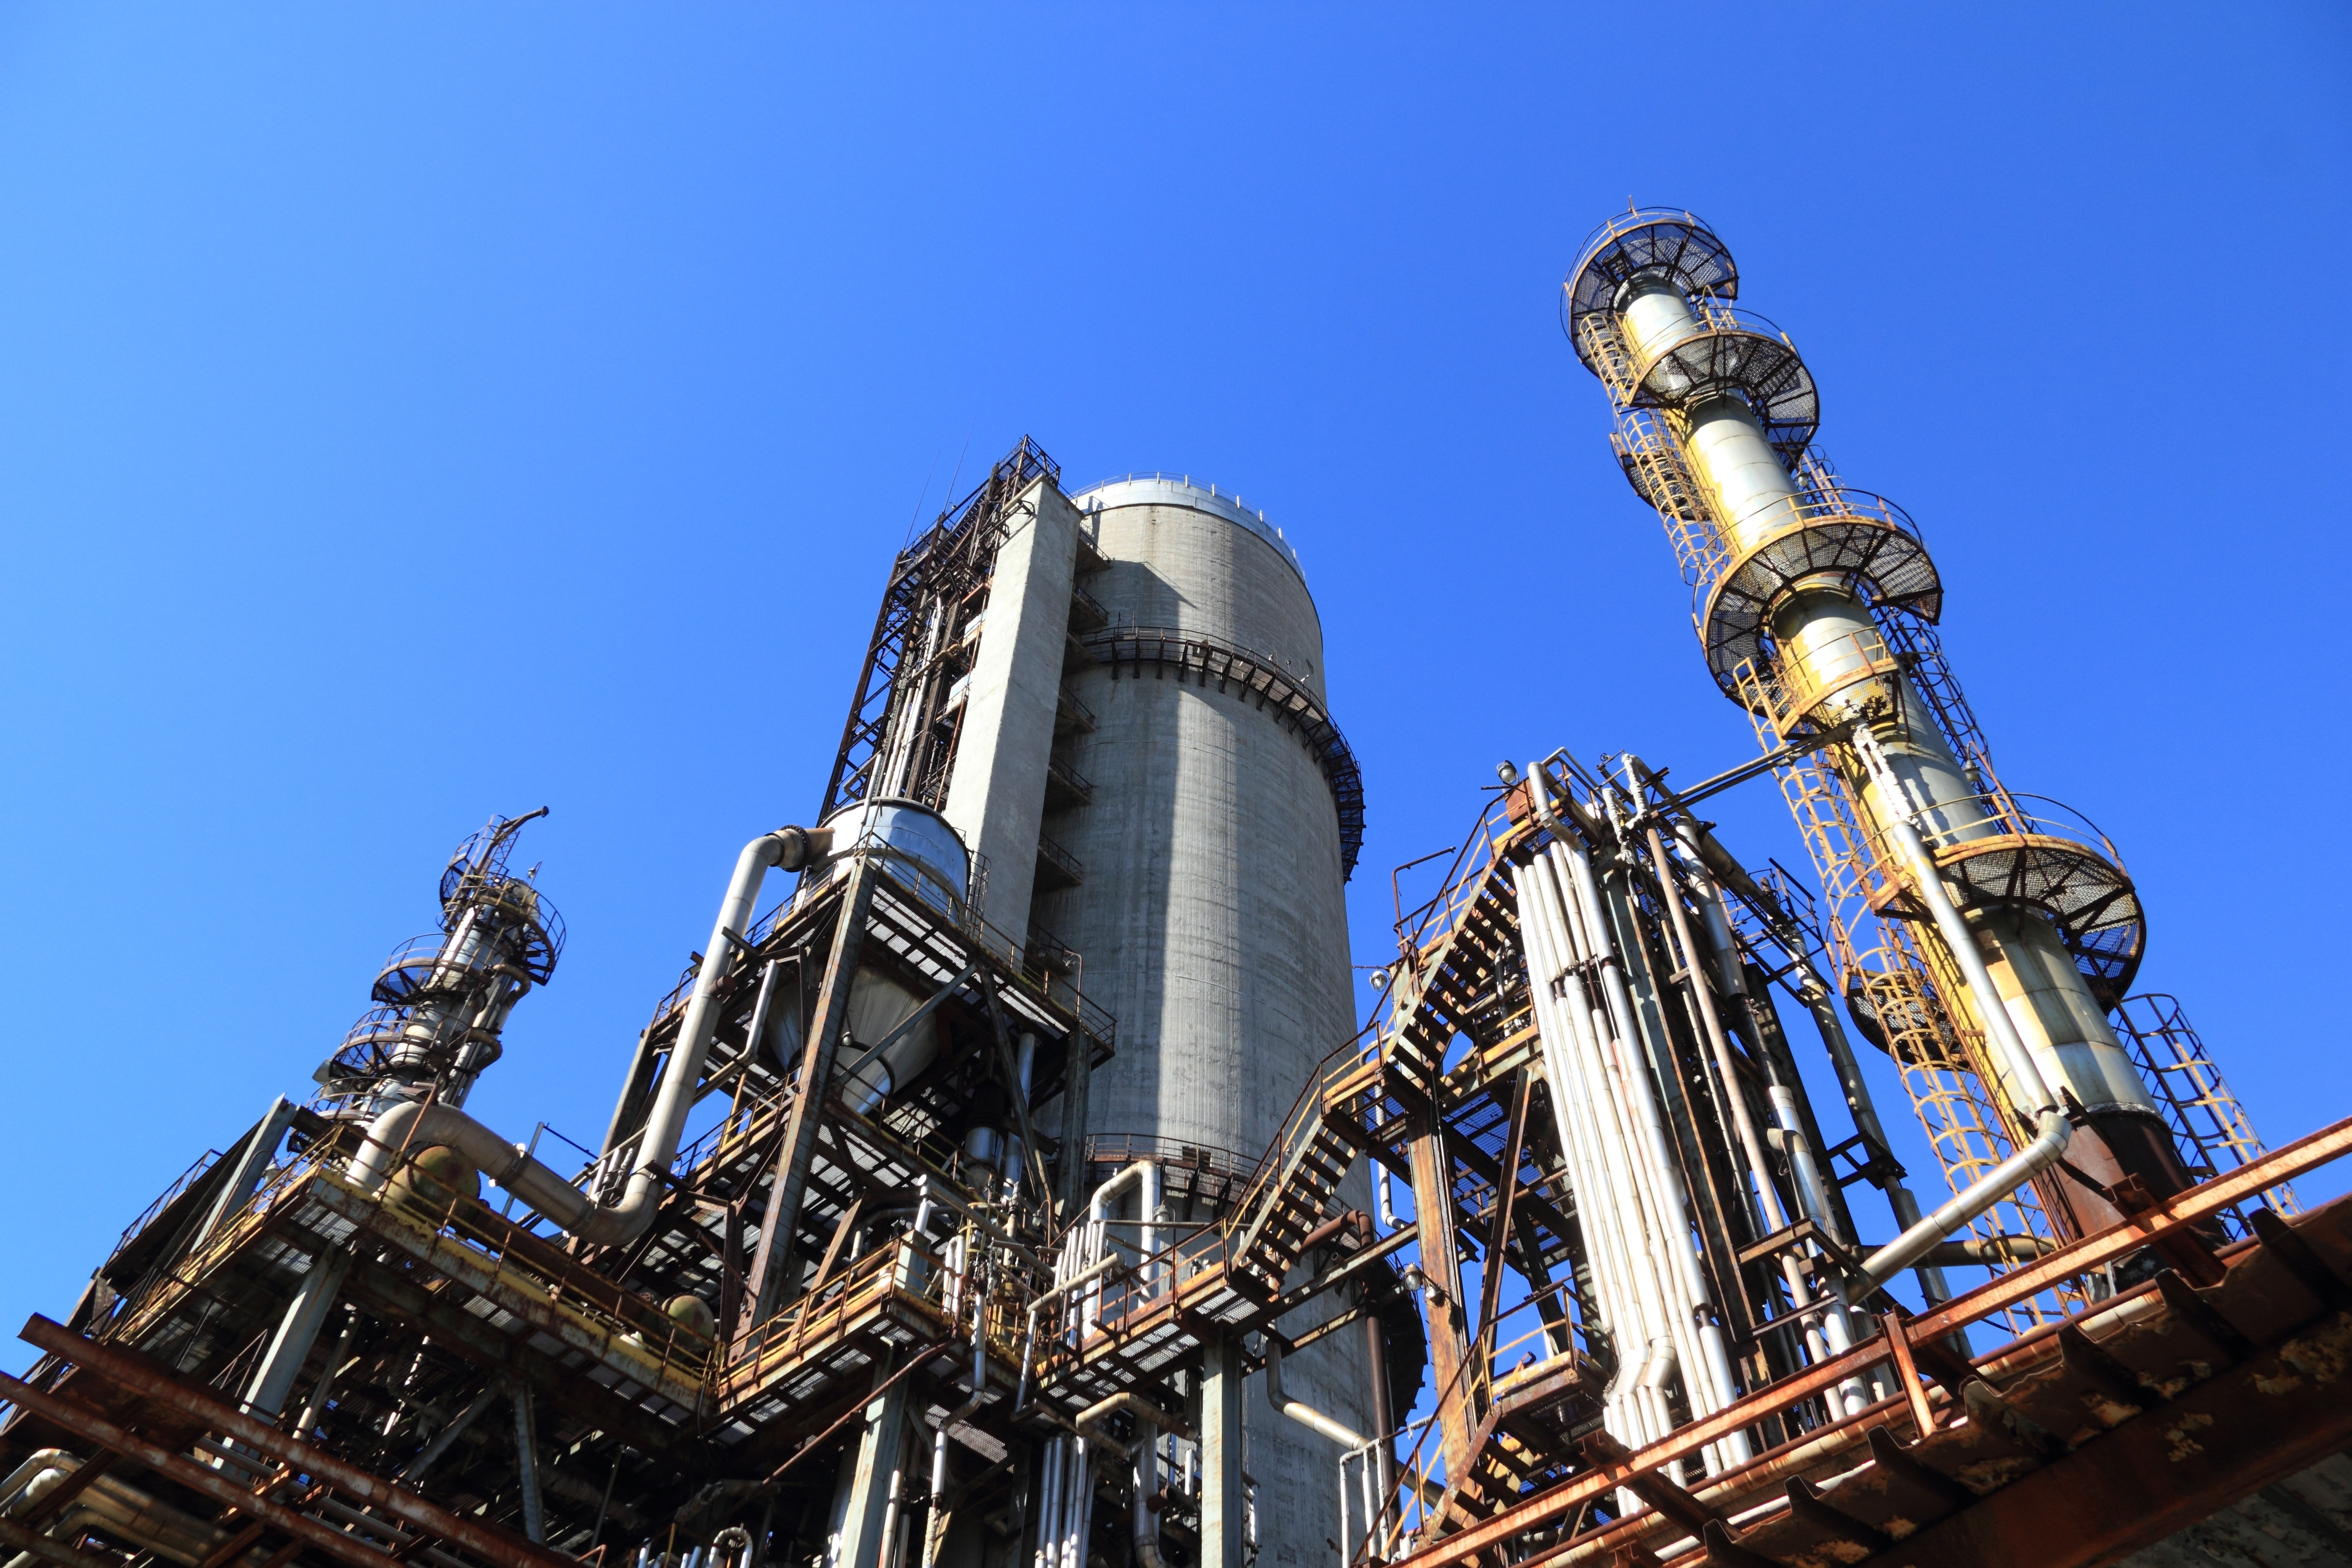 View of Factory Against Blue Sky, Business, Pipe, Steel, Smoke, HQ Photo